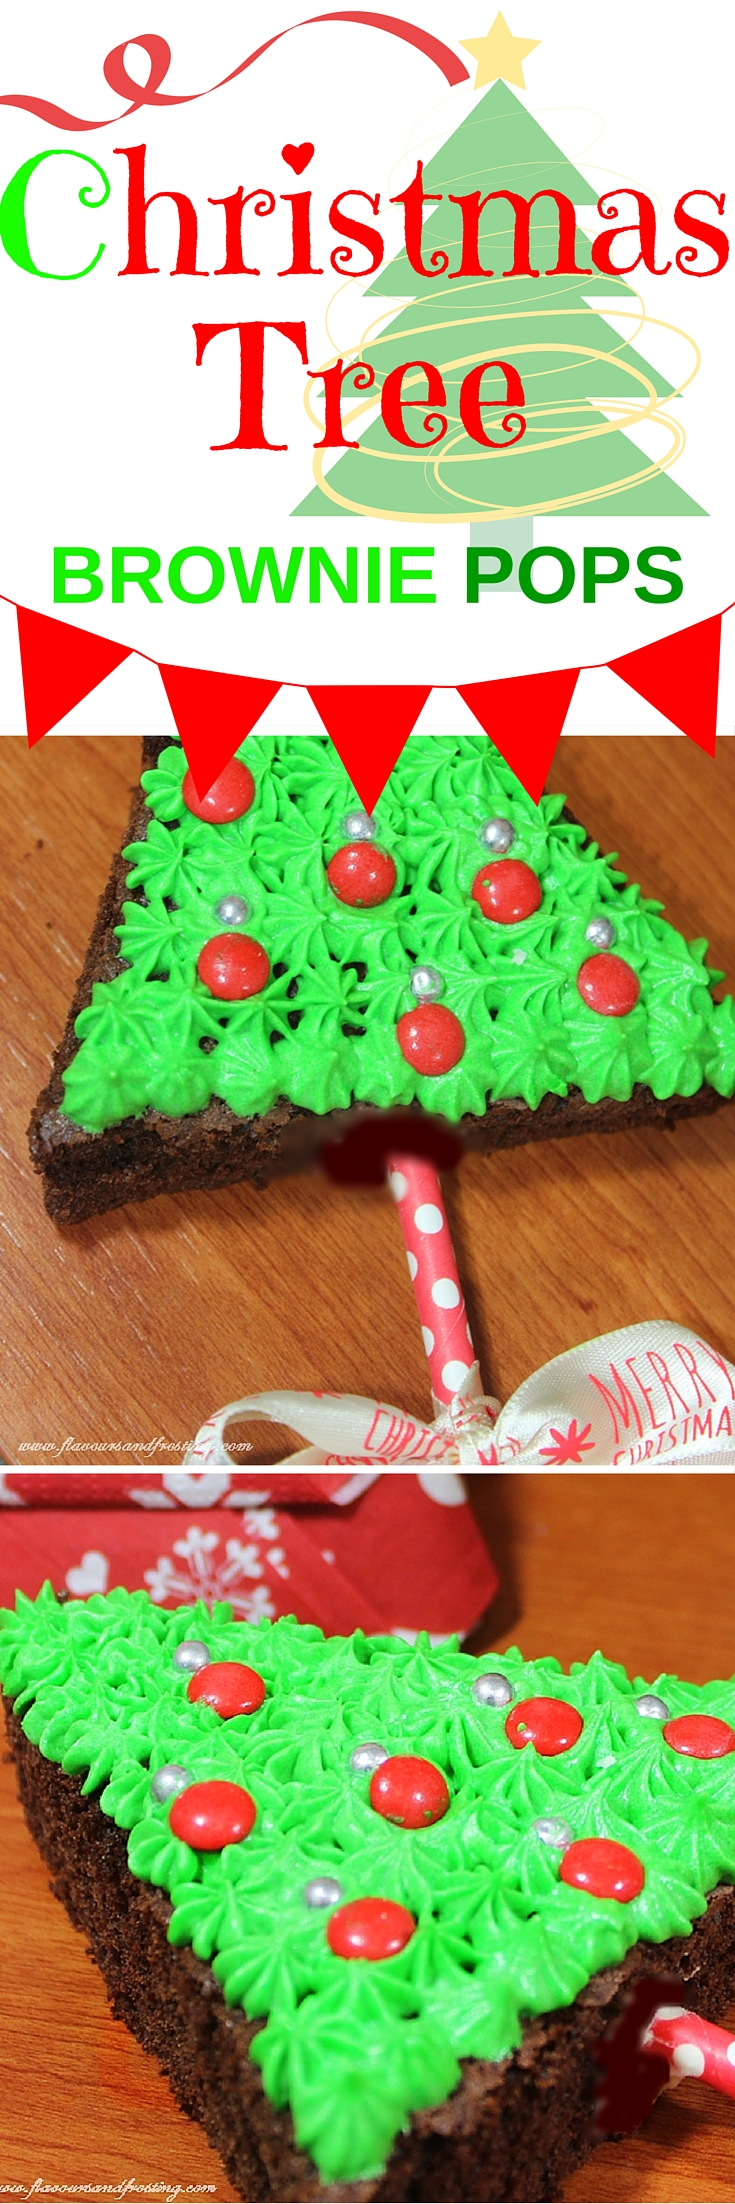 Christmas Tree Brownie Pops made with chocolate brownie and green colored buttercream. Topped with red m&m´s and silver edible balls! How cute!